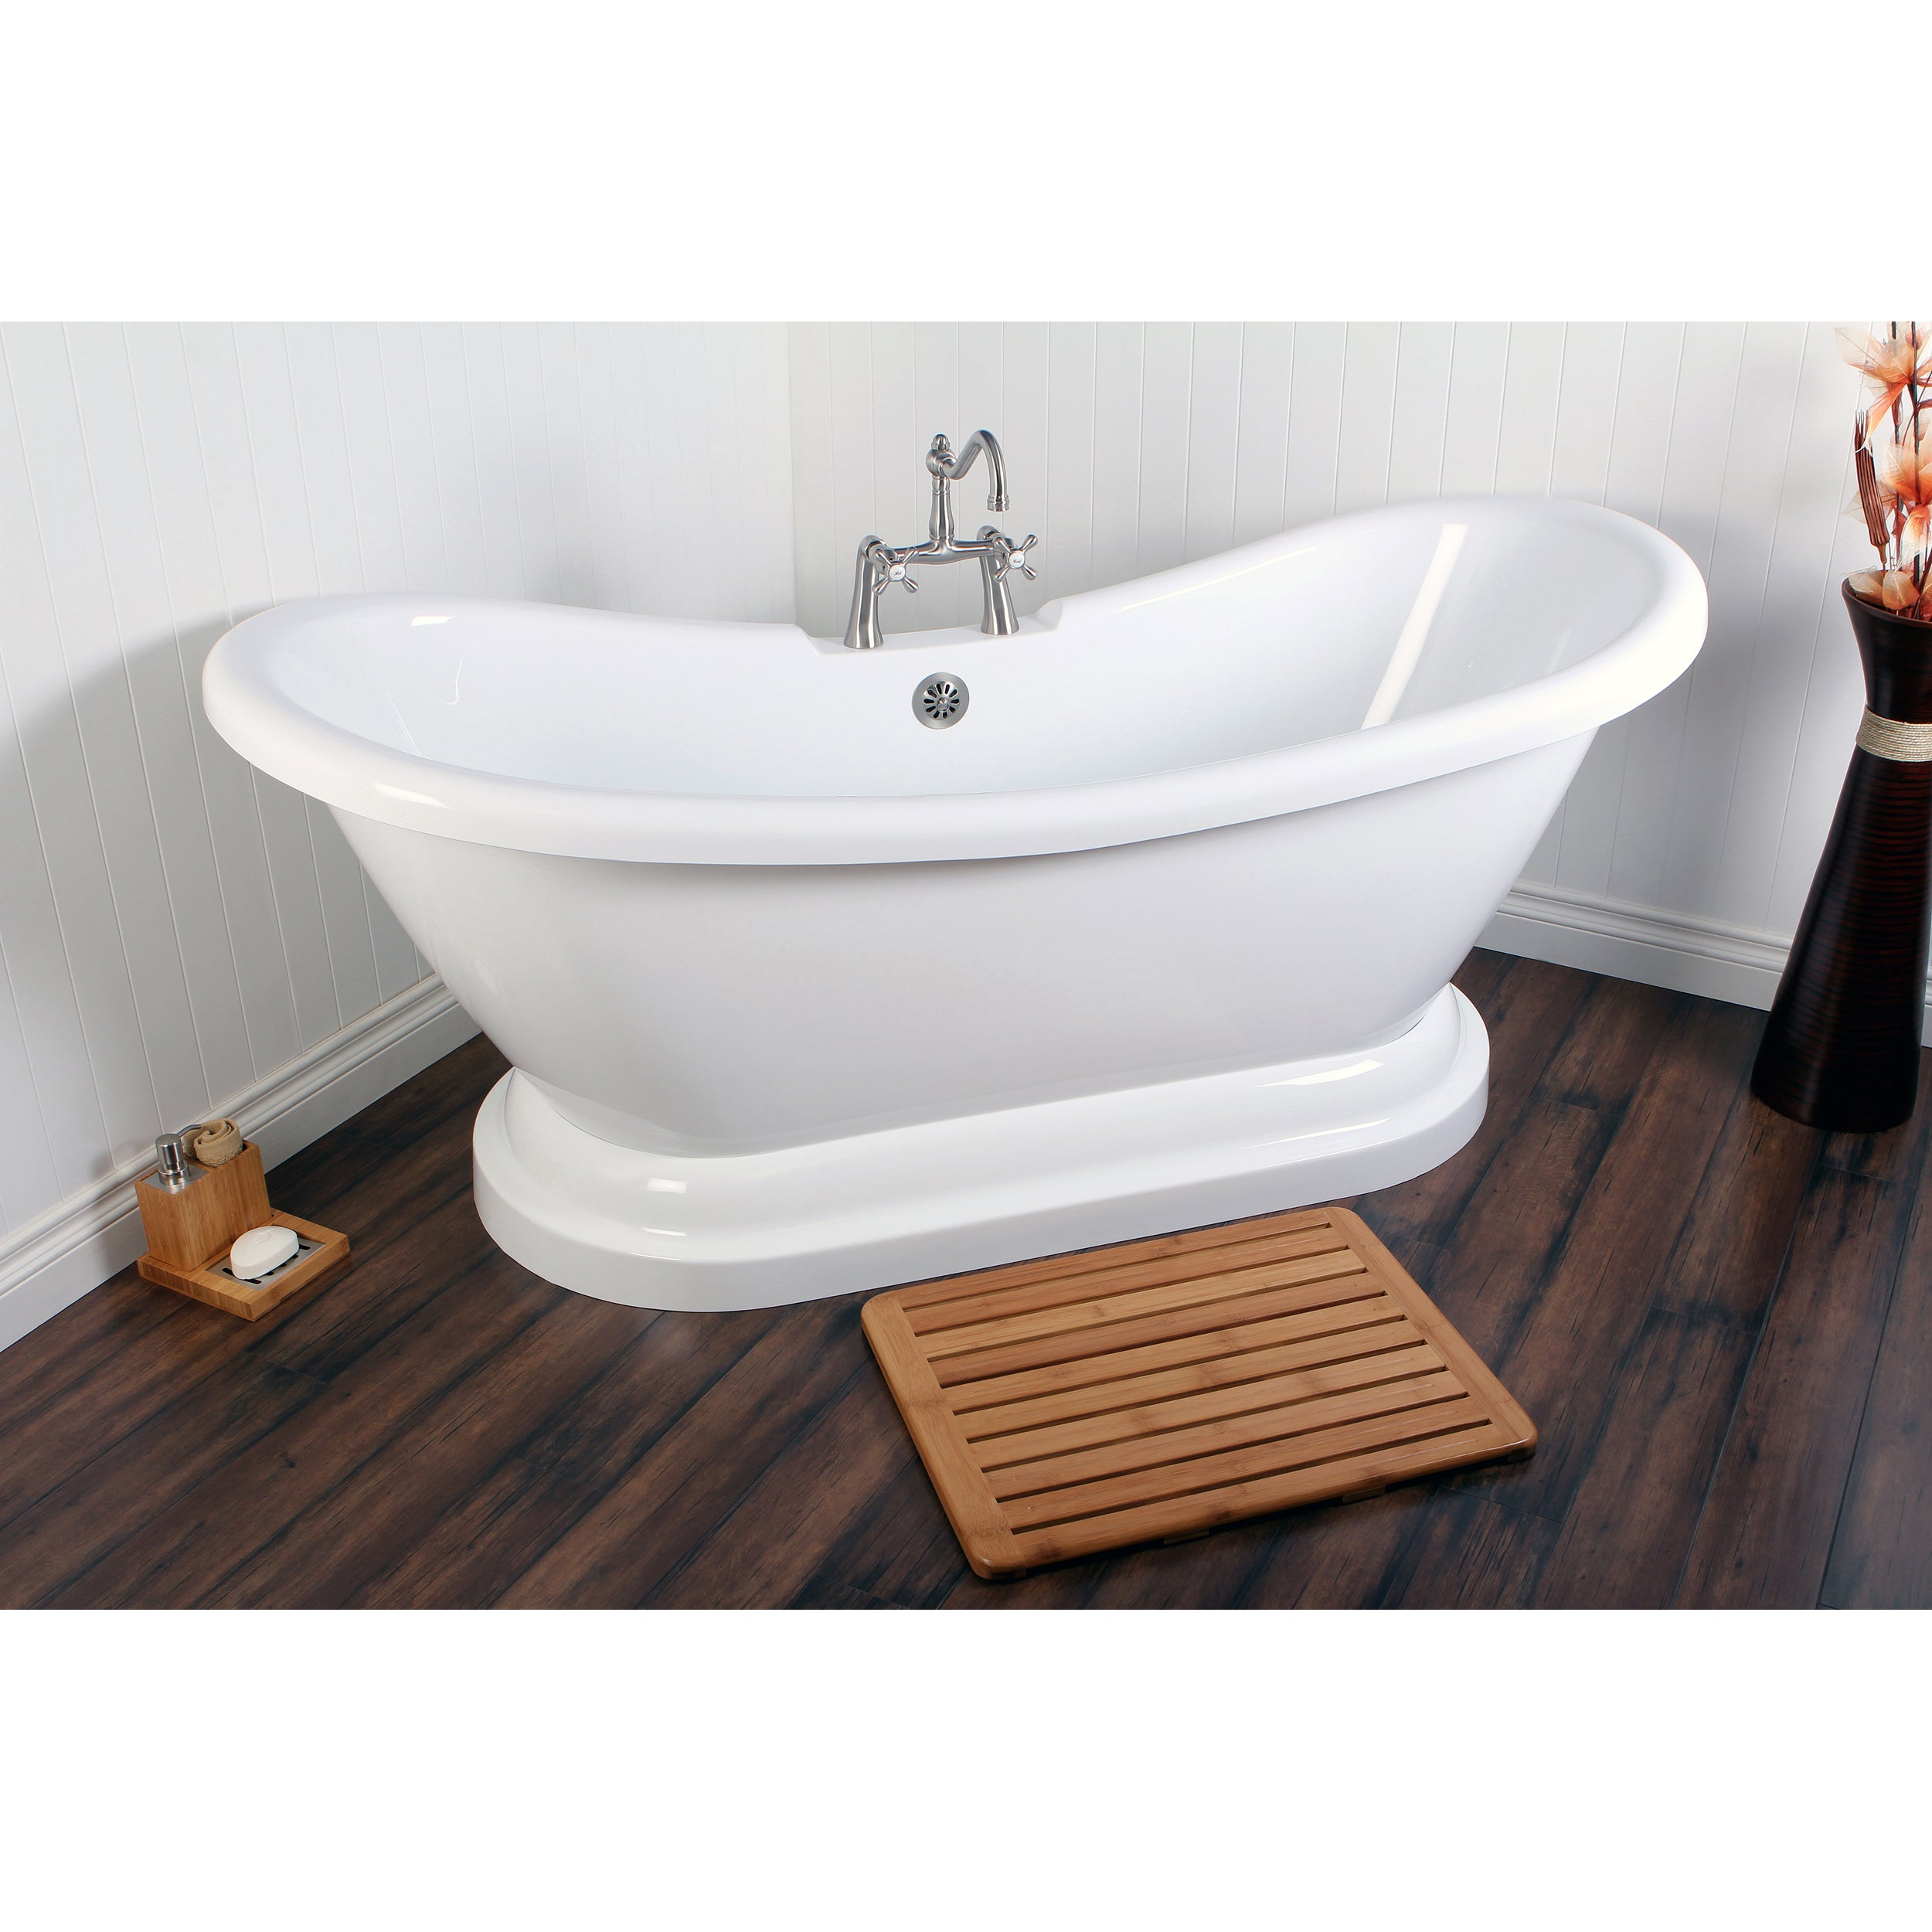 Contemporary Double Slipper 69-inch Pedestal Bathtub - Free Shipping ...